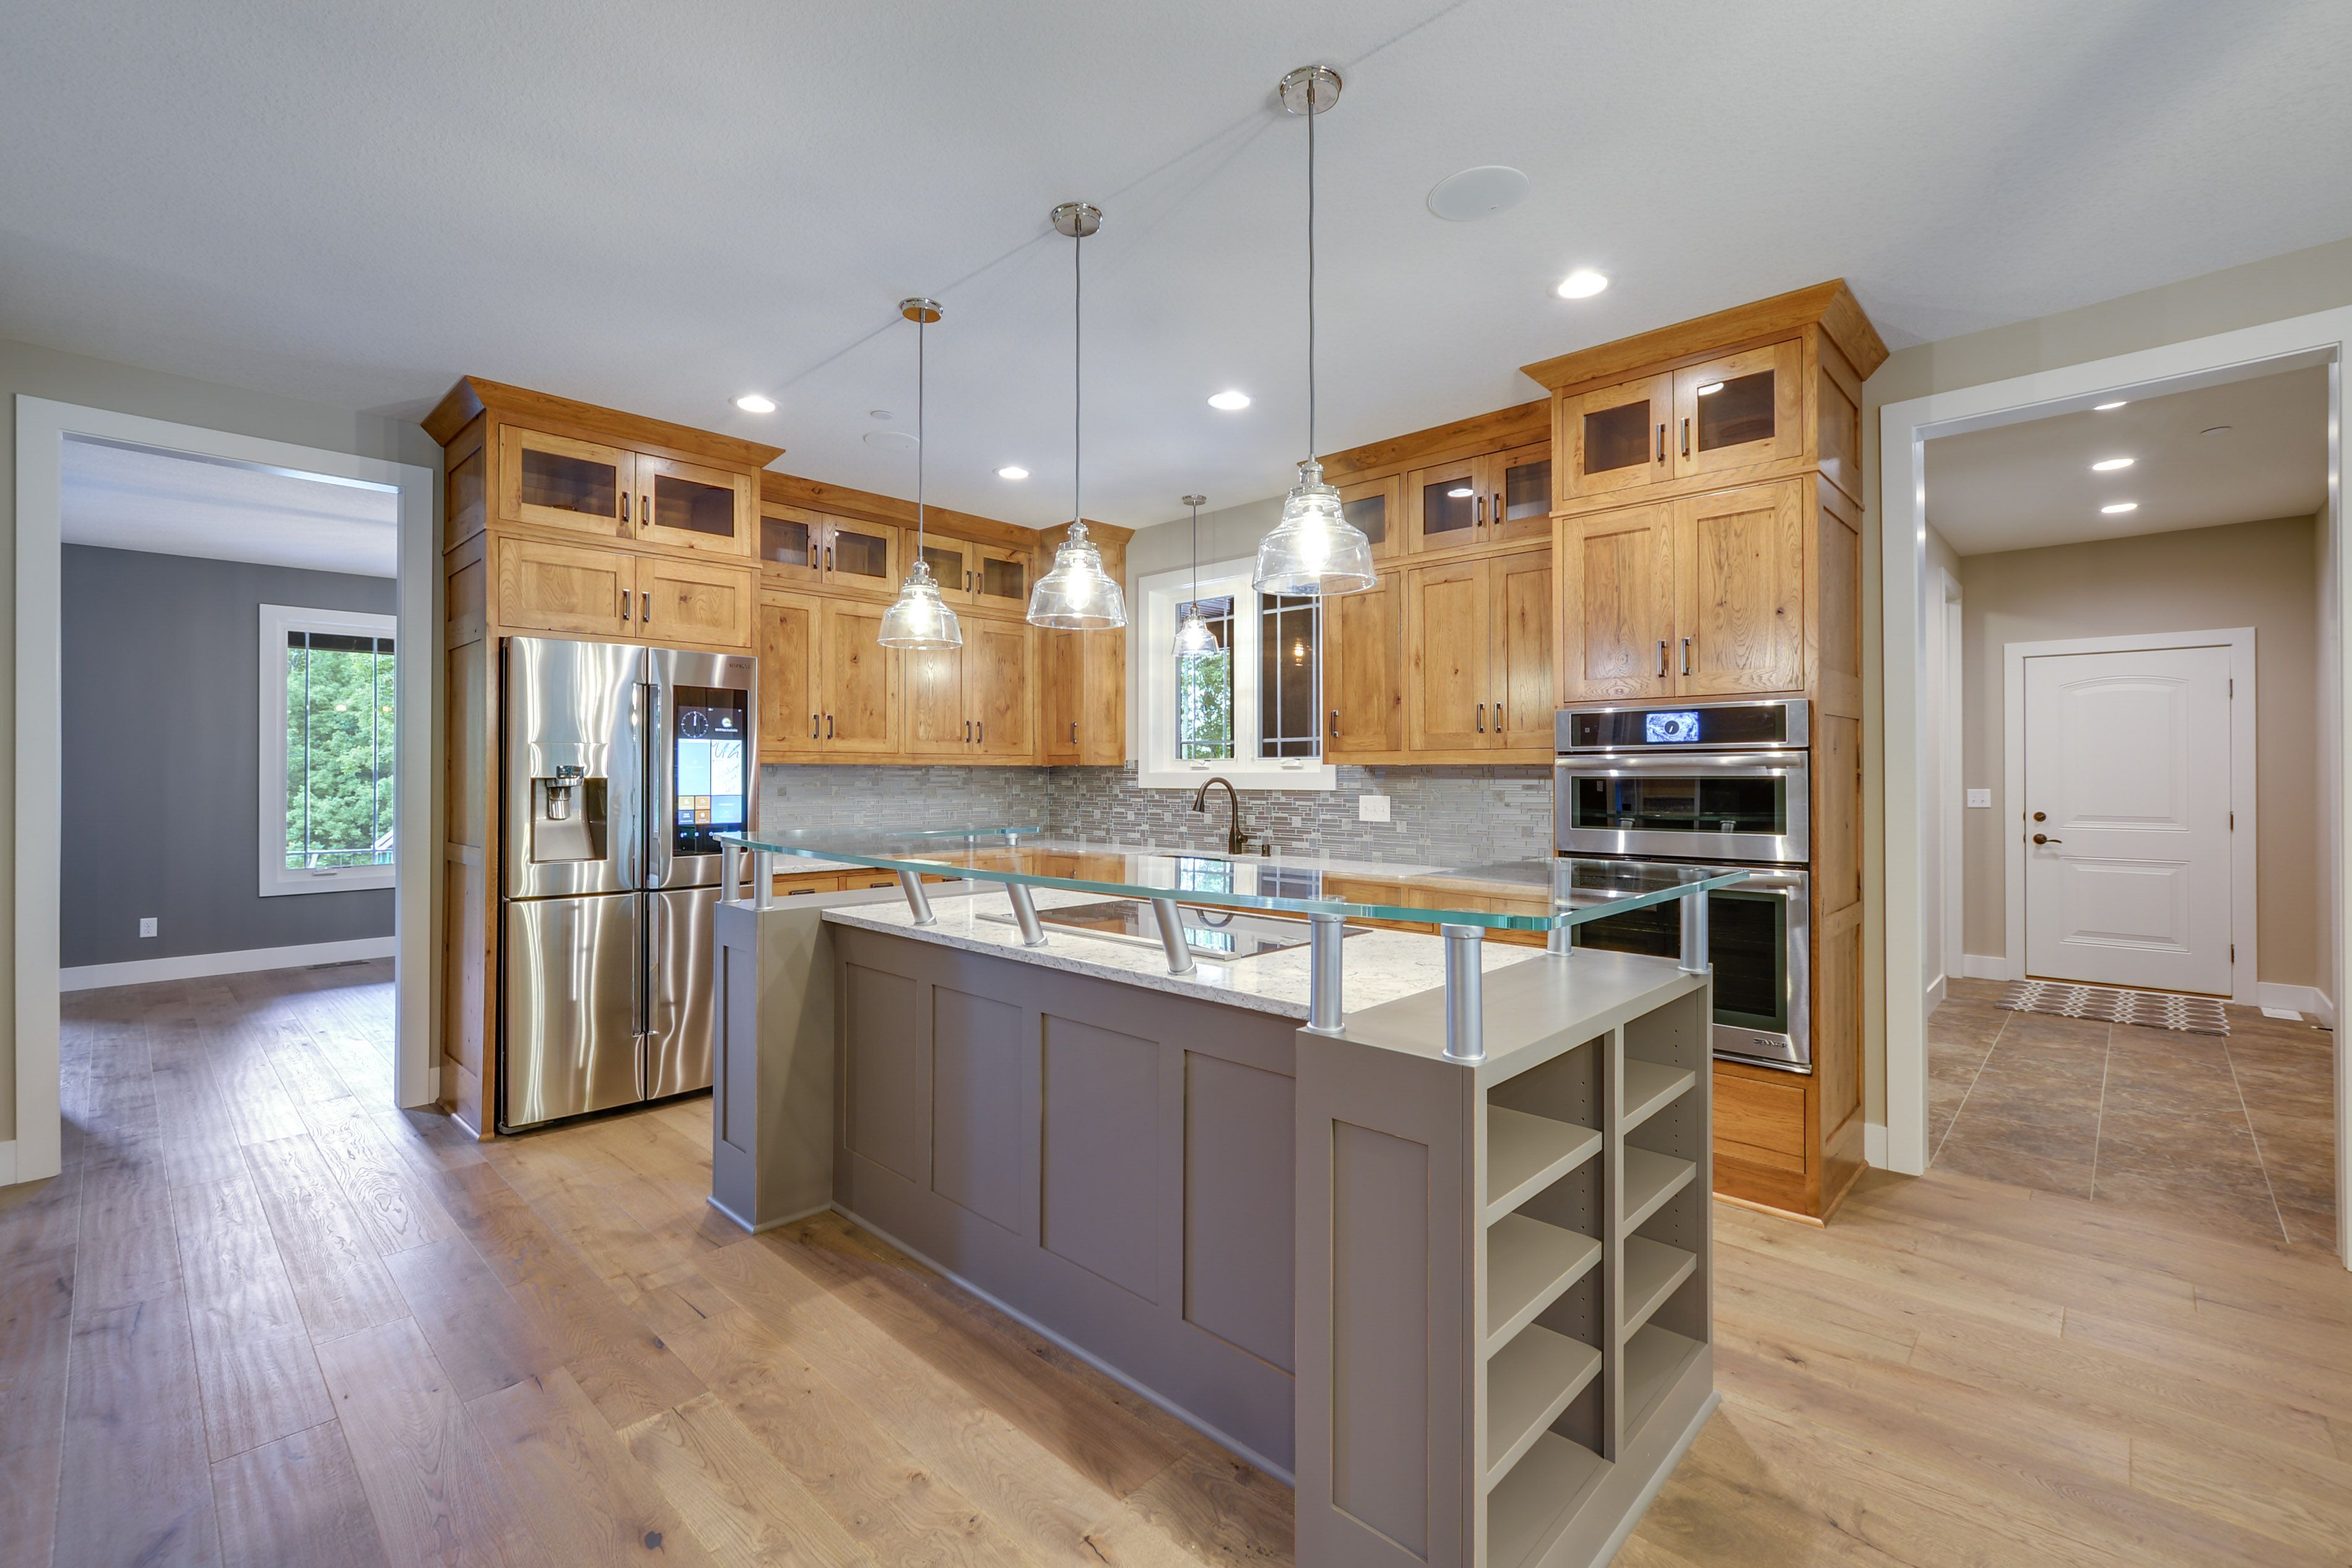 Beautiful Natural Kitchen With Grey Accents Custom Built By Fieldstone Family Homes In Prior Lake Mn Home Natural Kitchen Home And Family